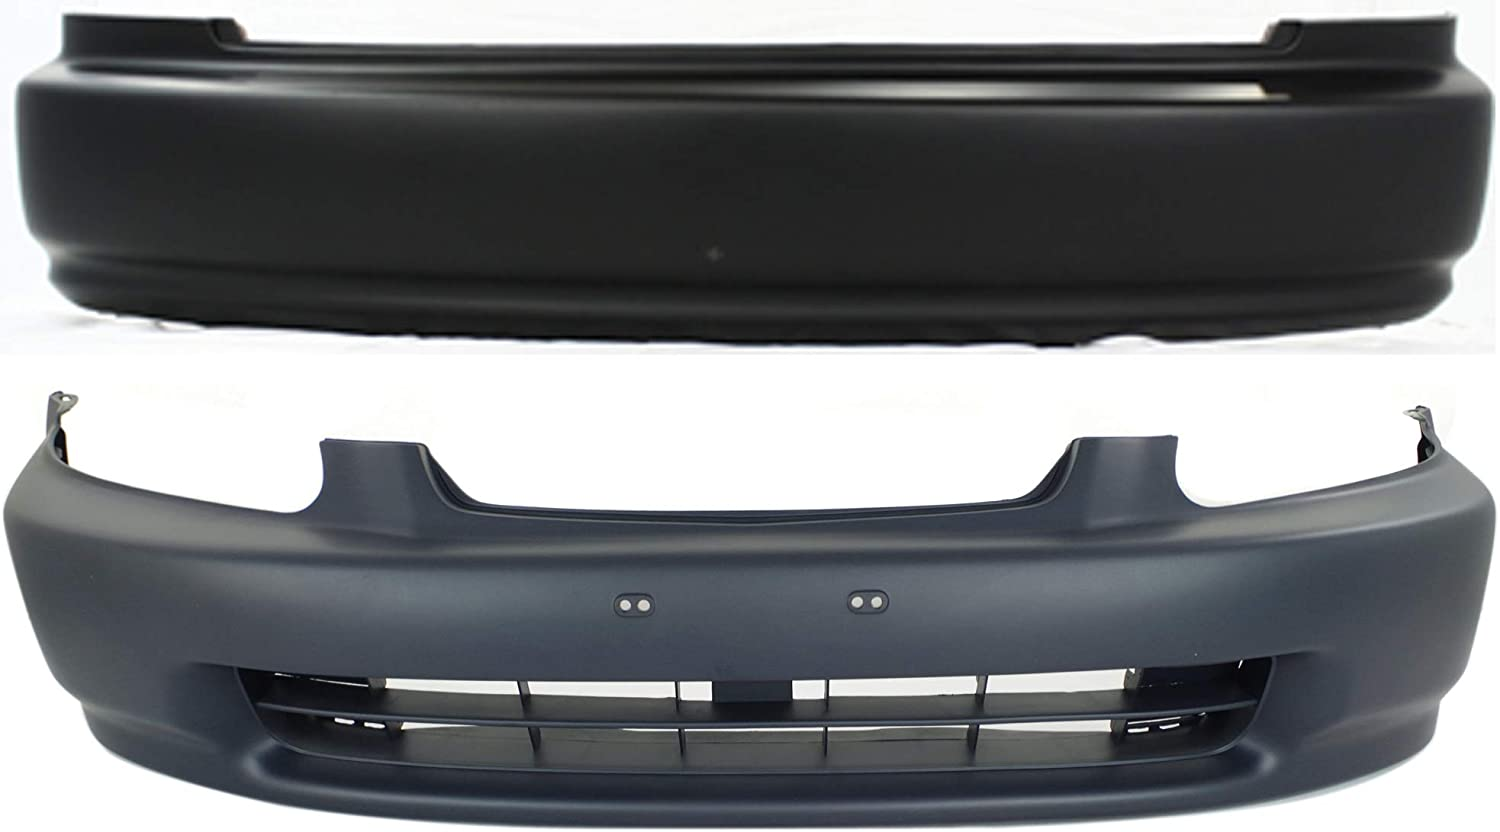 Bumper Cover Compatible with HONDA Civic 1996-1998 Front Rear Set of 2 Primed